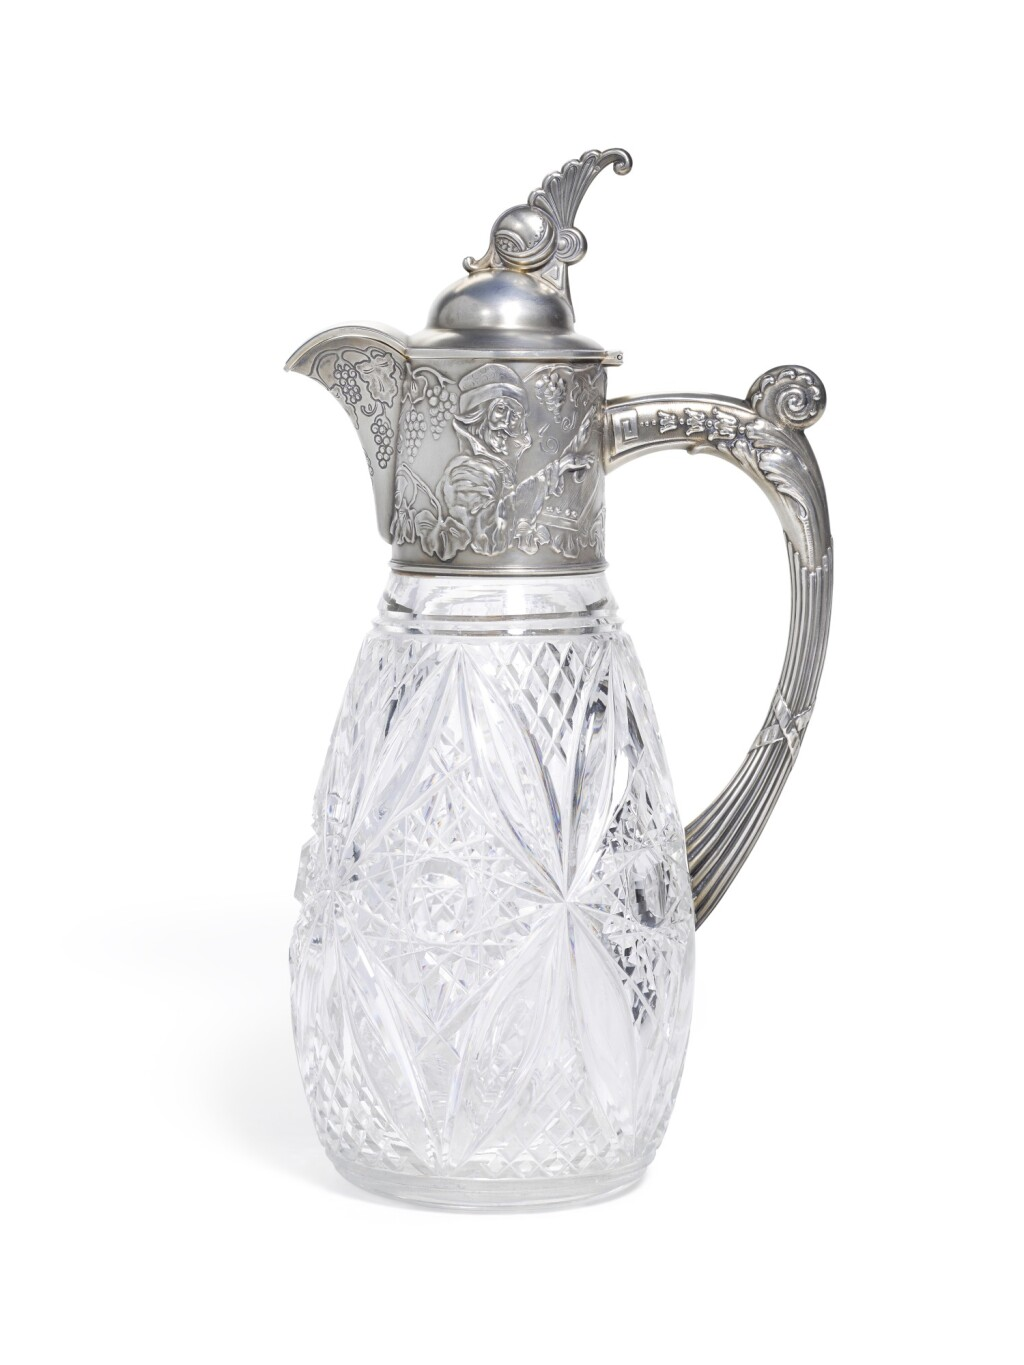 A LARGE SILVER-MOUNTED CUT-GLASS DECANTER, MIKHAIL TARASOV, MOSCOW, 1908-1917